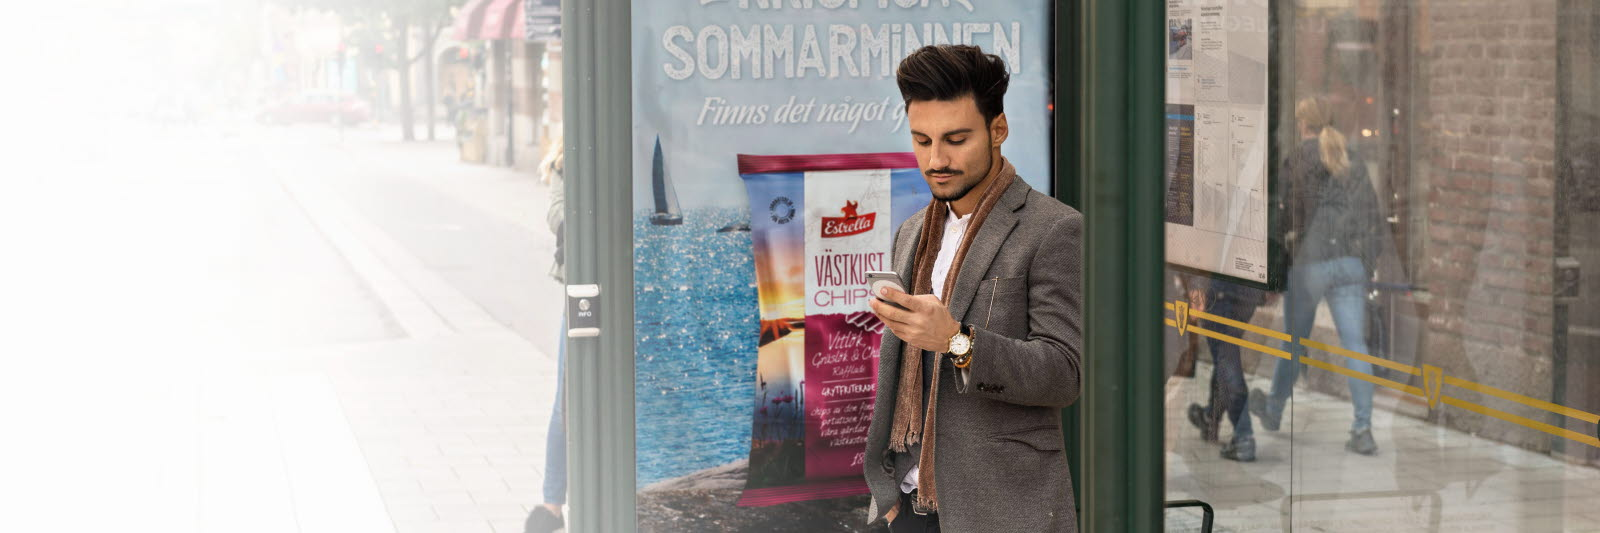 Man looking at mobile phone advertising at a bus stop